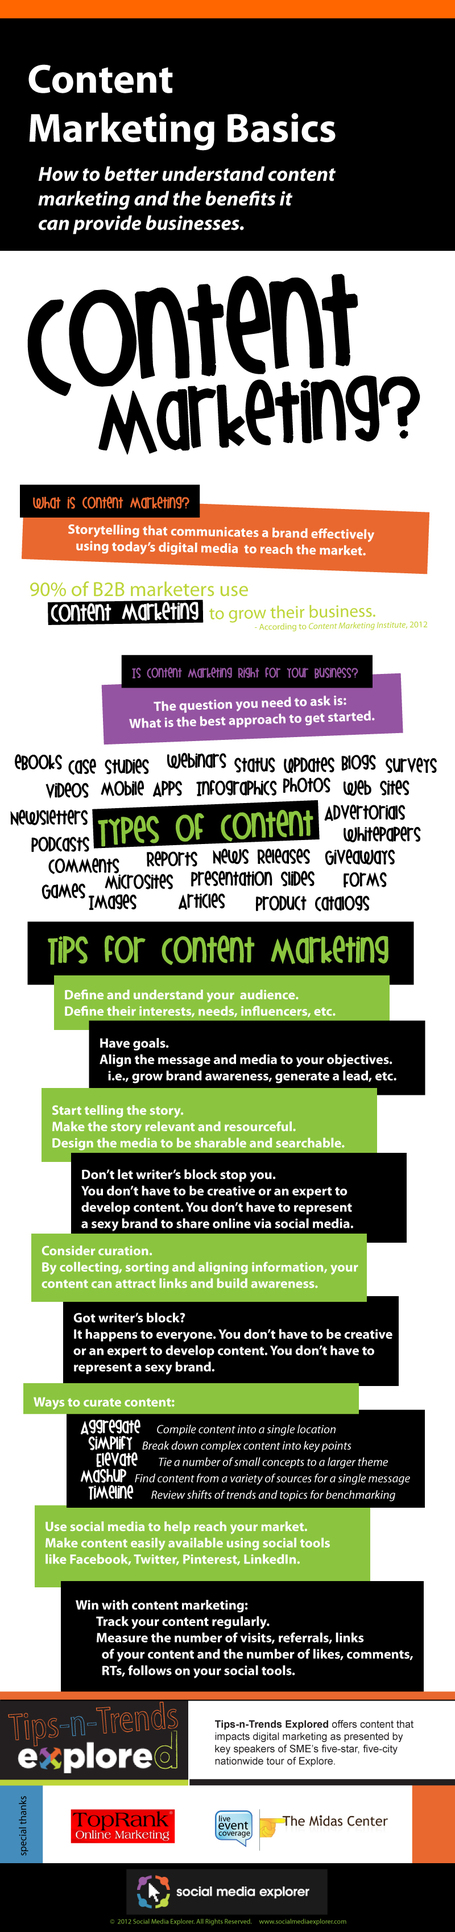 Content Marketing Basics [INFOGRAPHIC] | Managing options | Scoop.it